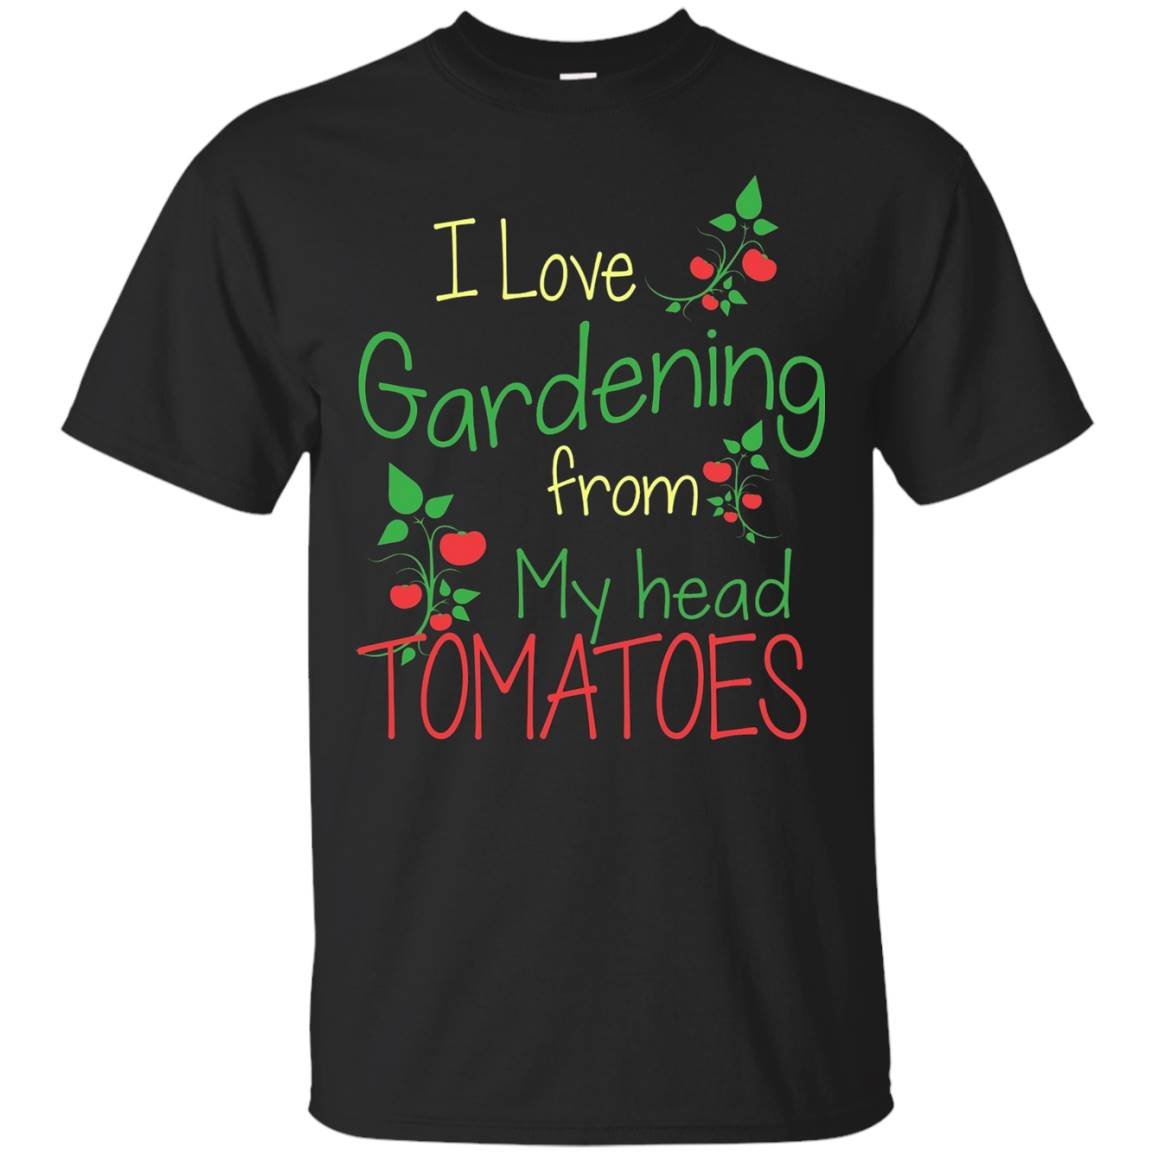 I Love Gardening From My Head Tomatoes – Gardening T-shirts